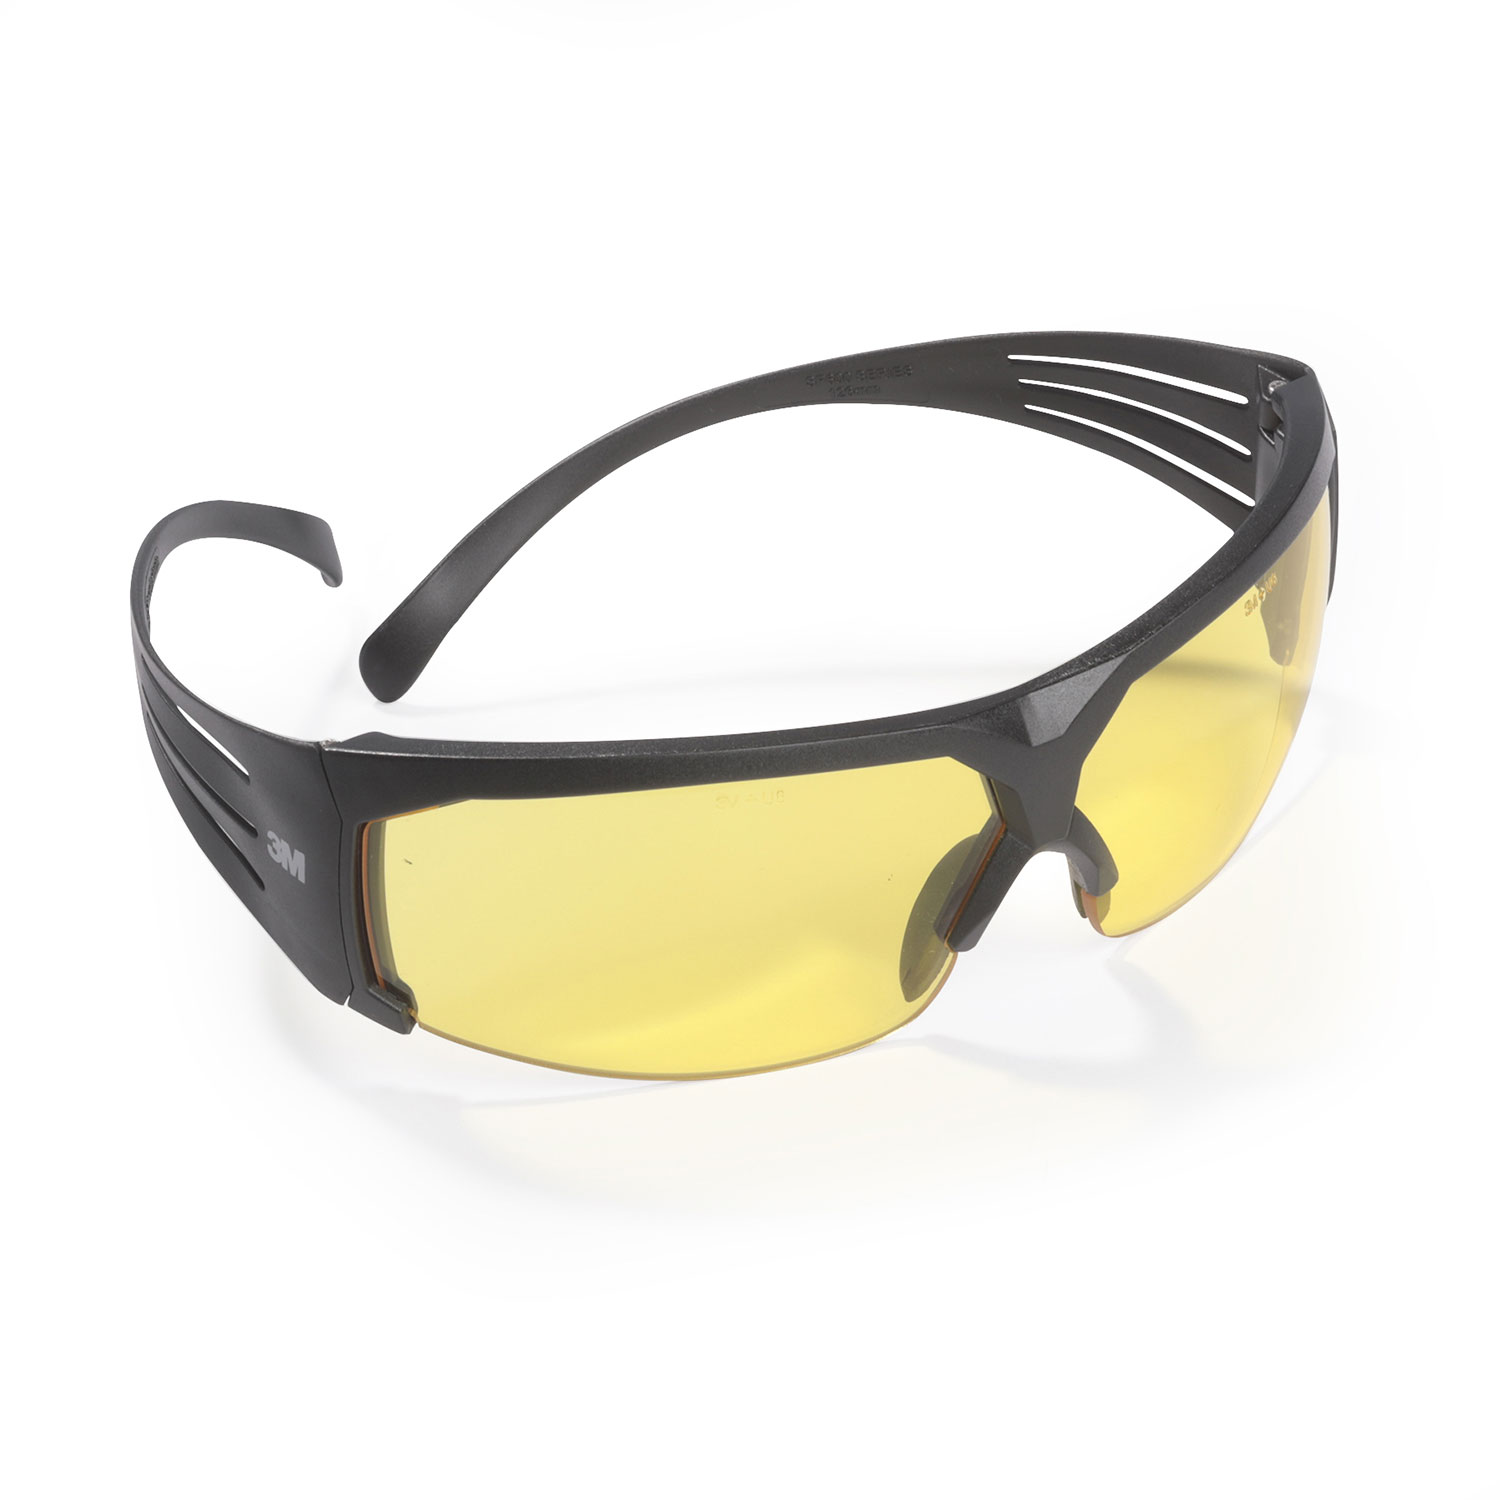 3M™ Peltor™ Sport SecureFit™ 400 Series Glasses